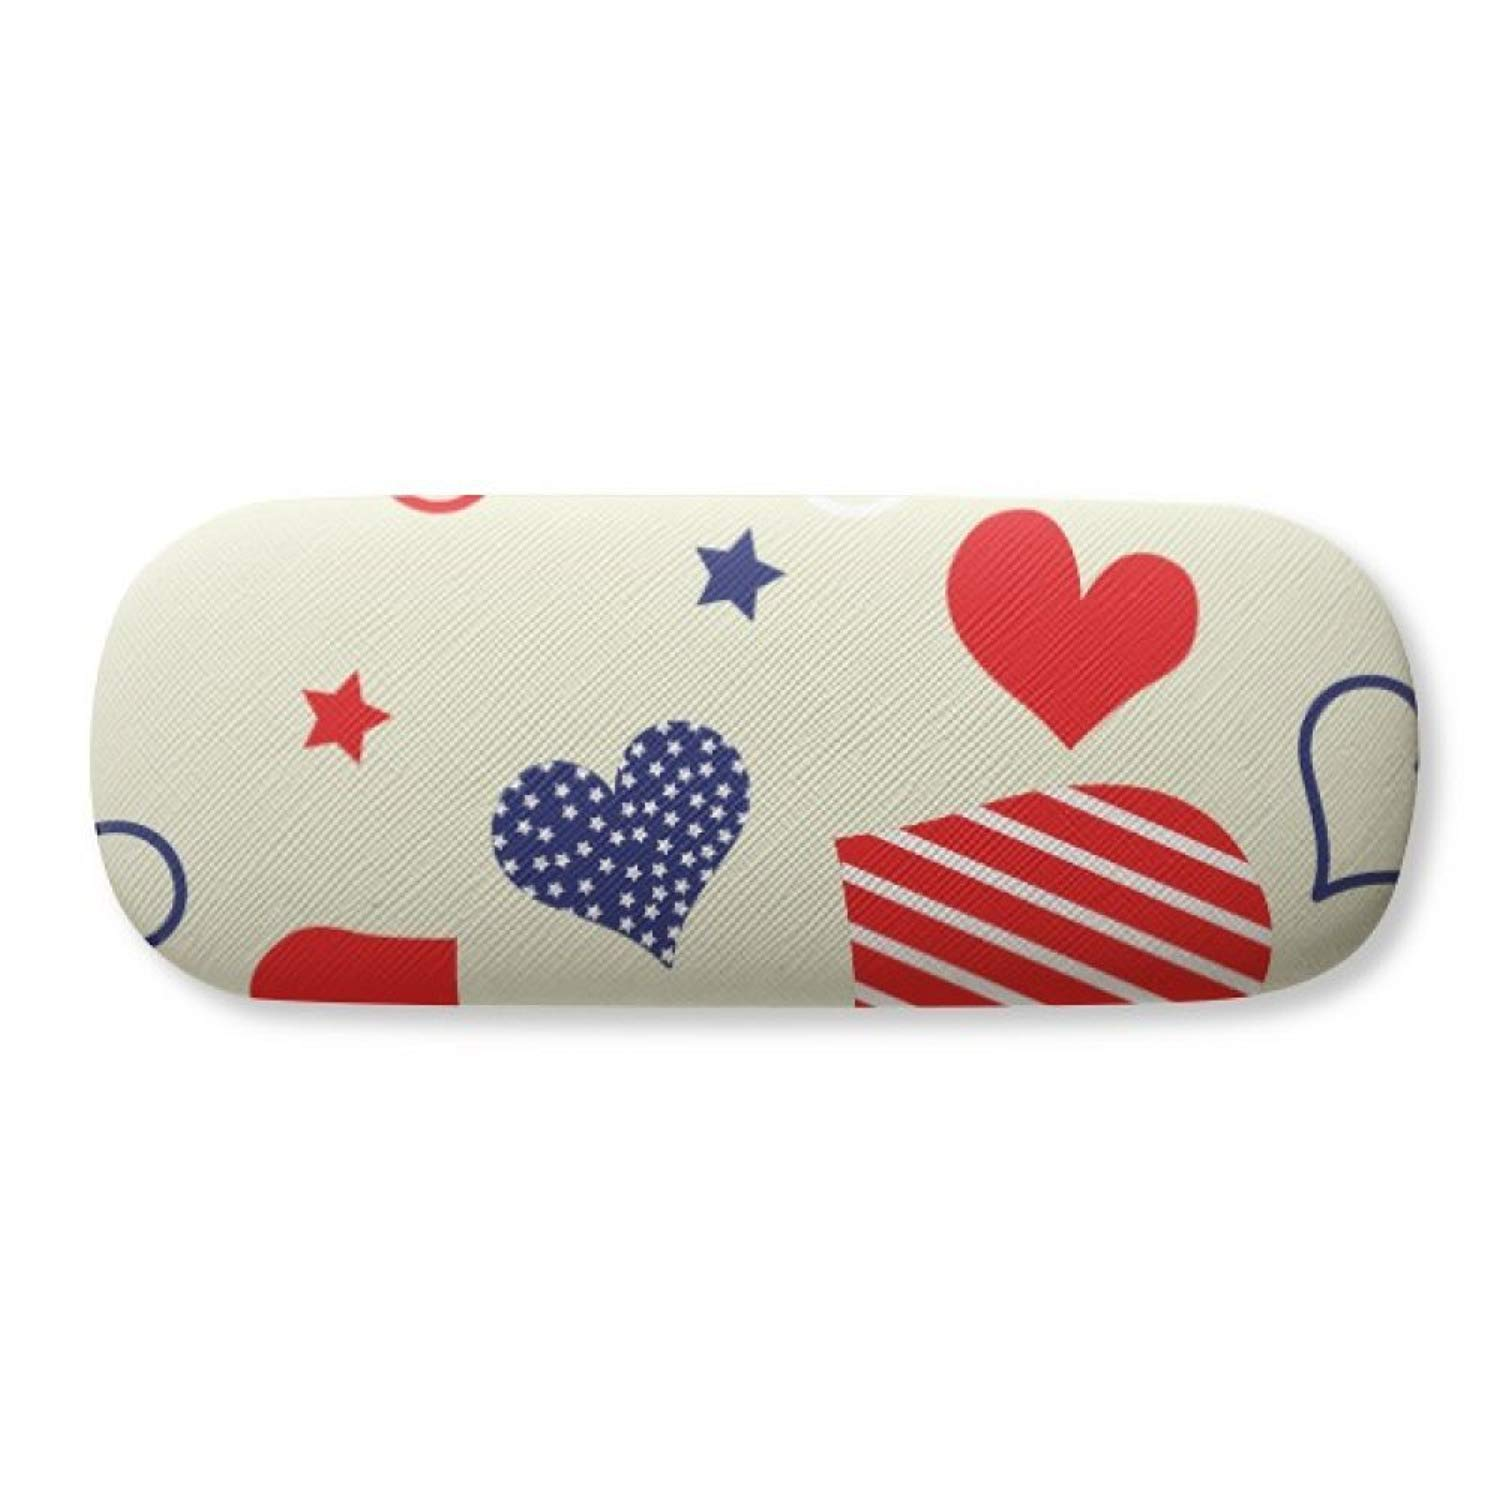 Pineapple Red Fruits Picture Blue Water Glasses Case Eyeglasses Clam Shell Holder Storage Box